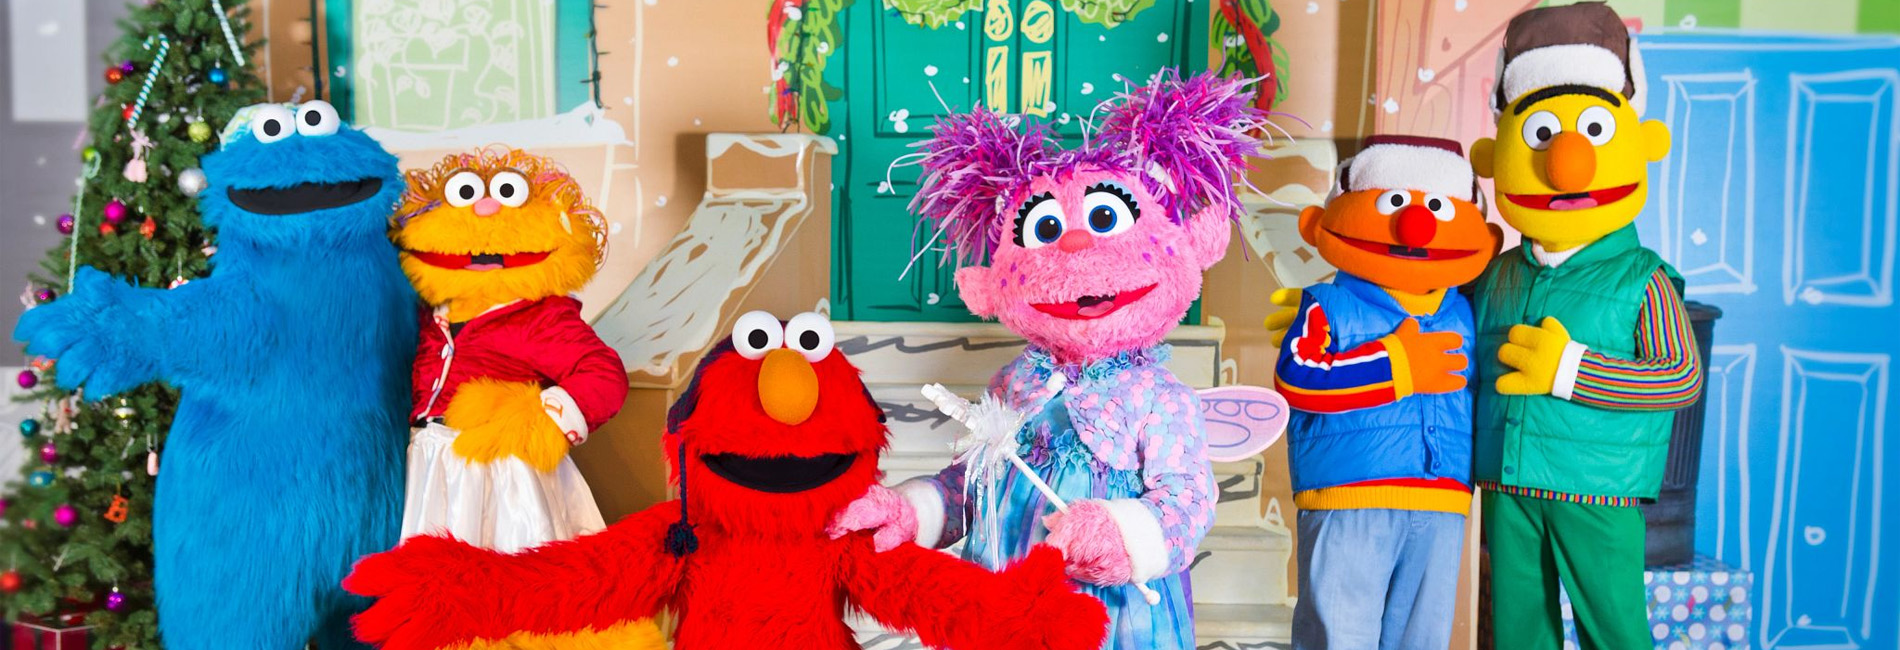 A Very Merry Sesame Street Sing-Along Show at Sesame Place